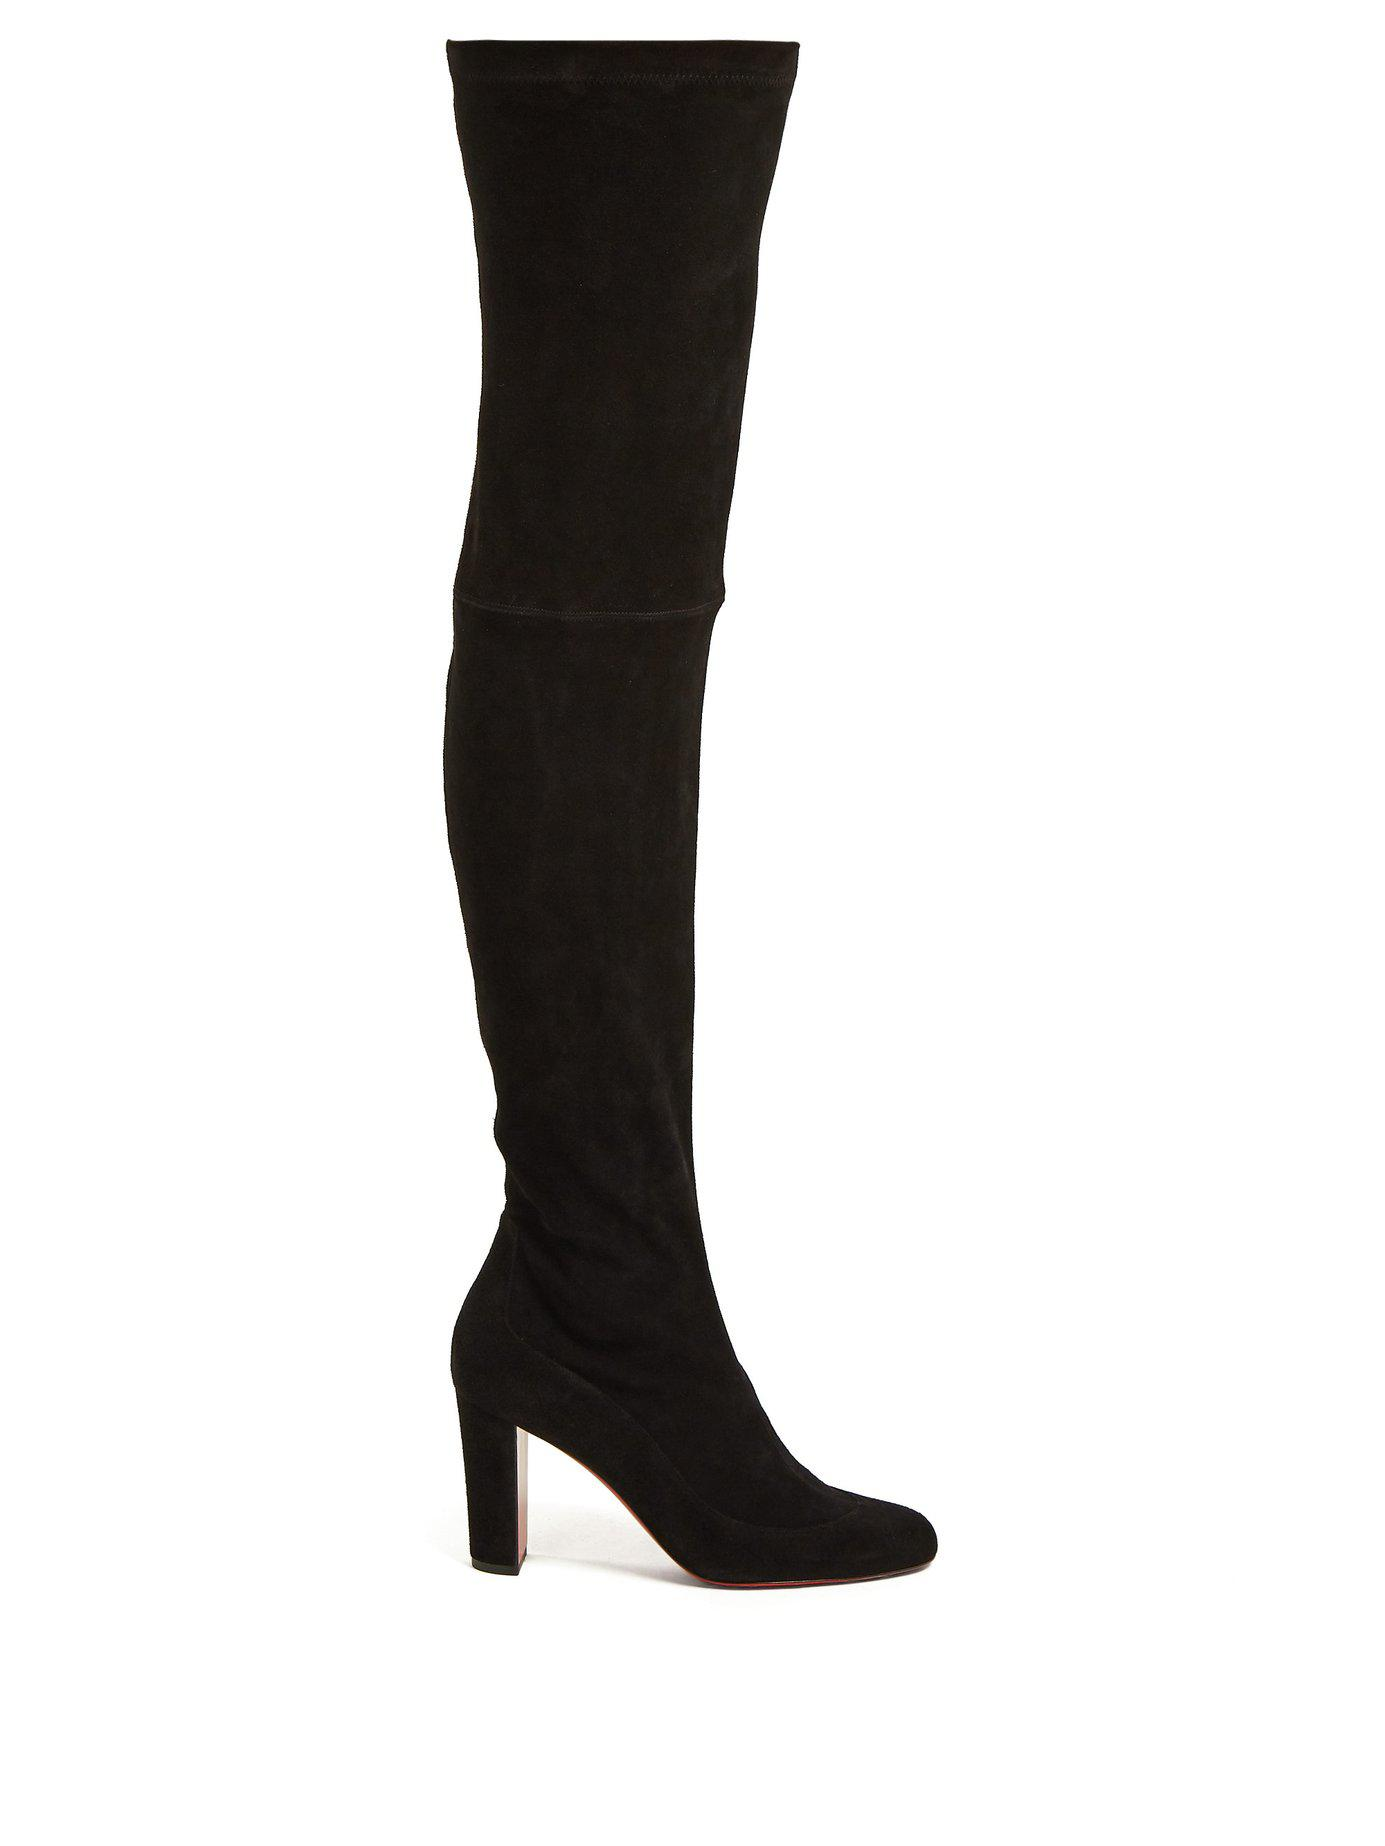 b1175b9e1dfb Lyst - Christian Louboutin Kiss Me Gina 85 Over The Knee Boots in Black